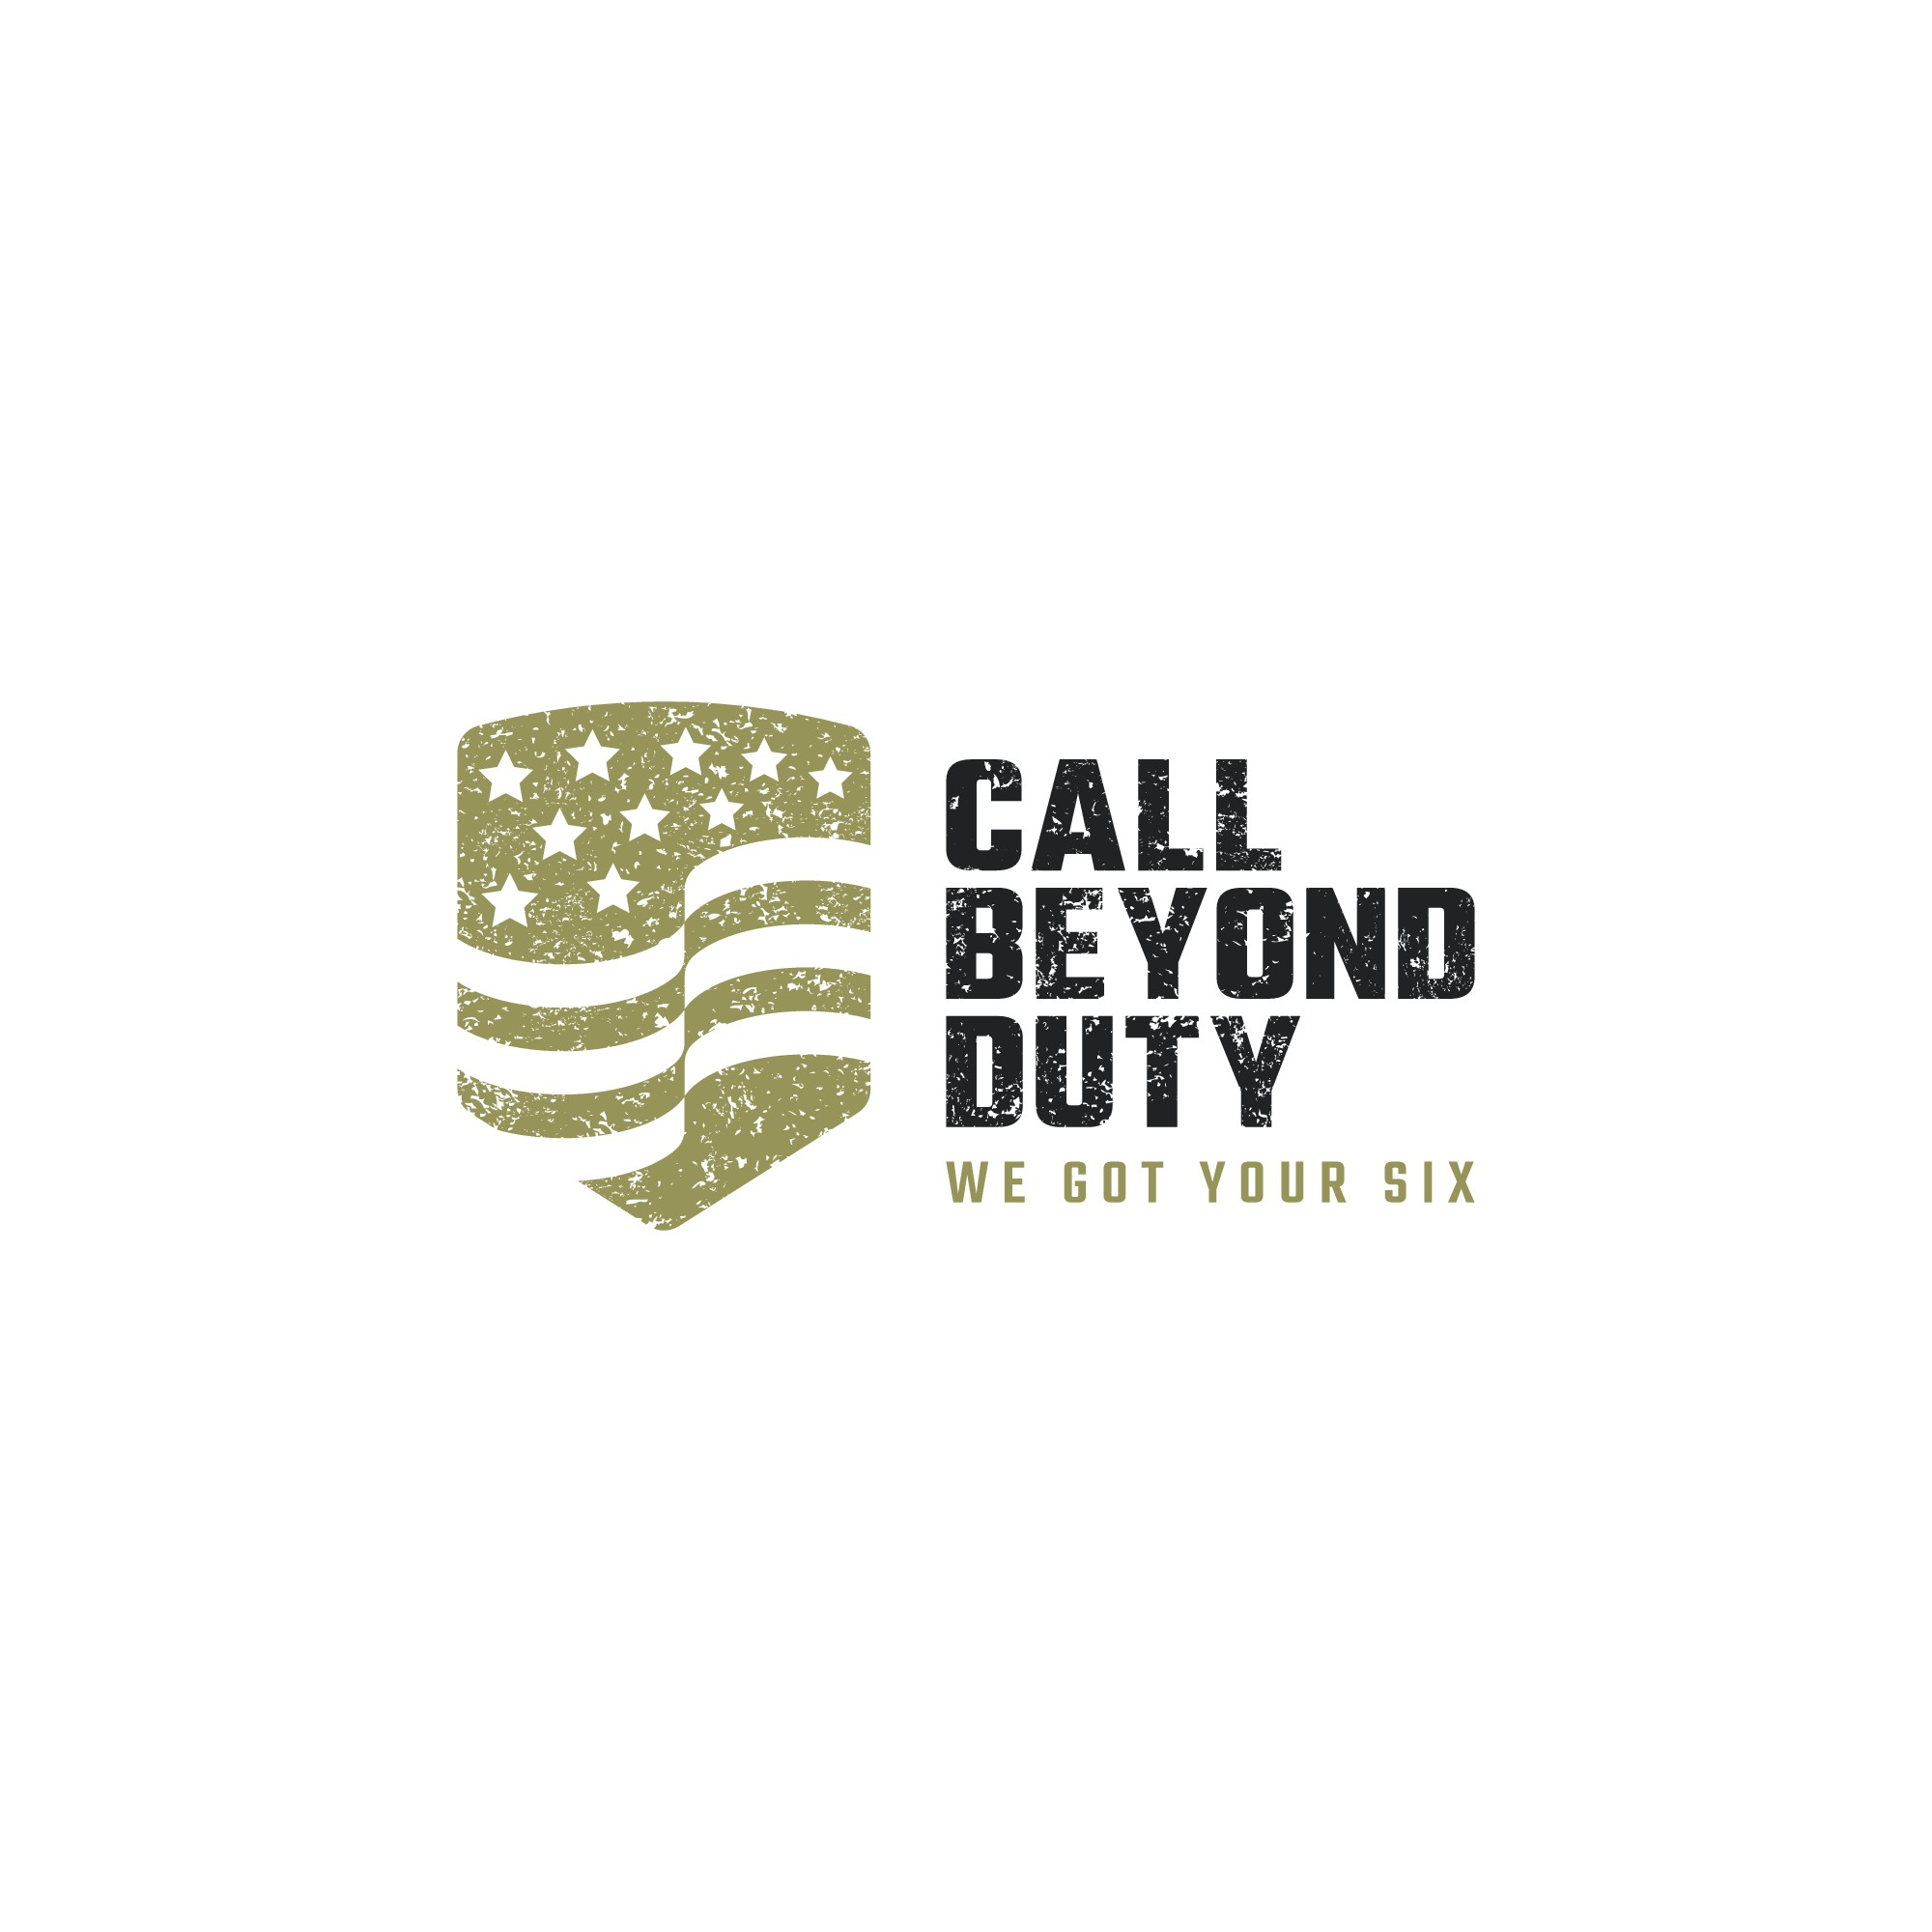 Military / Veteran Lifestyle Brand